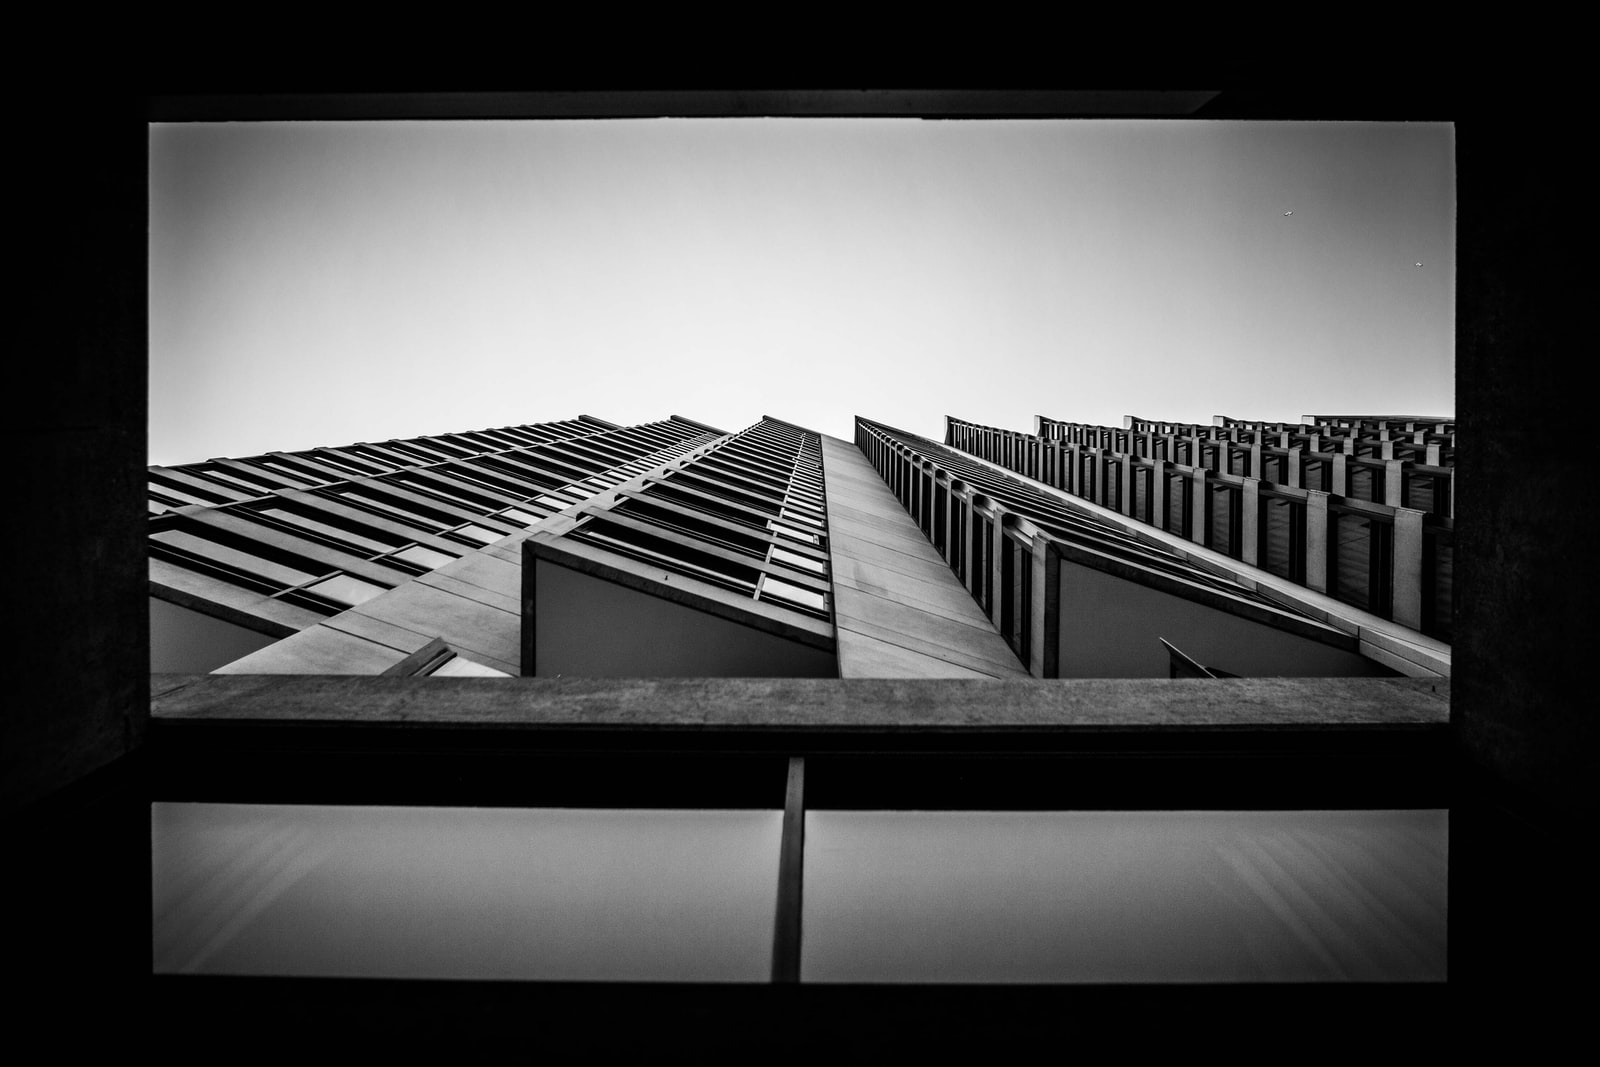 worm's eyeview of multi-storey